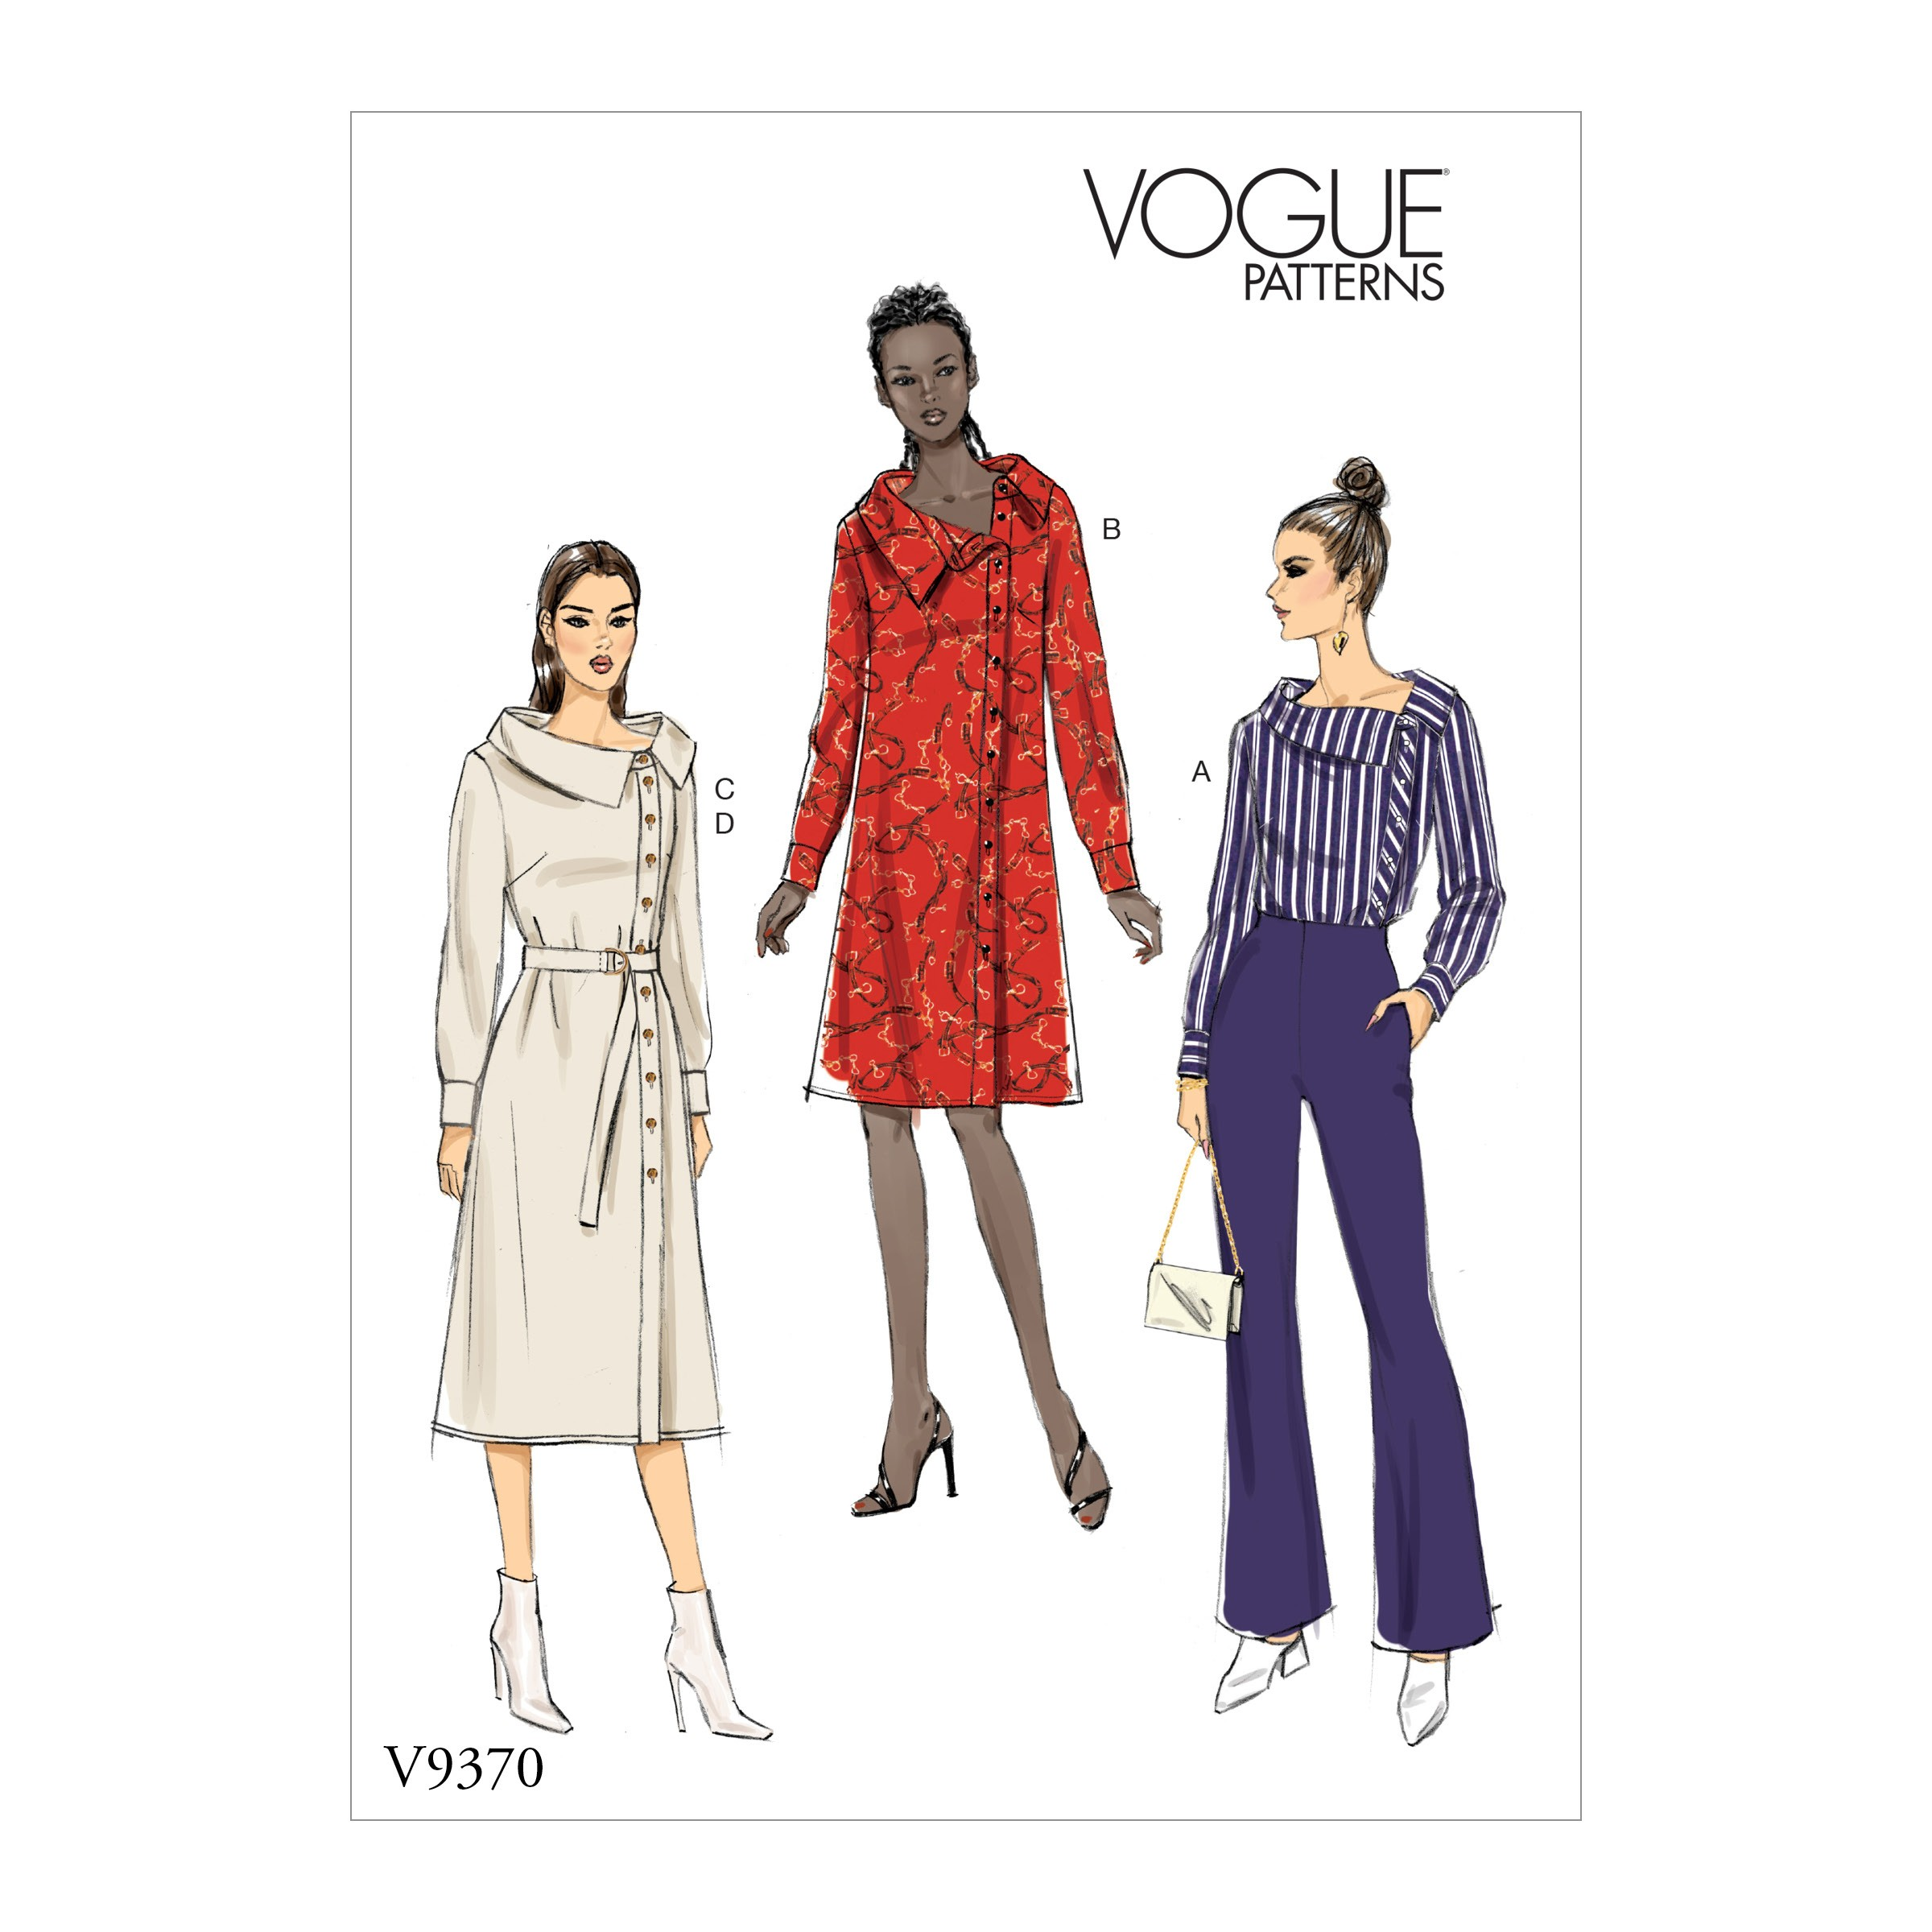 Vogue Sewing Pattern V9370 Women's Tunic, Dress and Trousers with Side Buttons